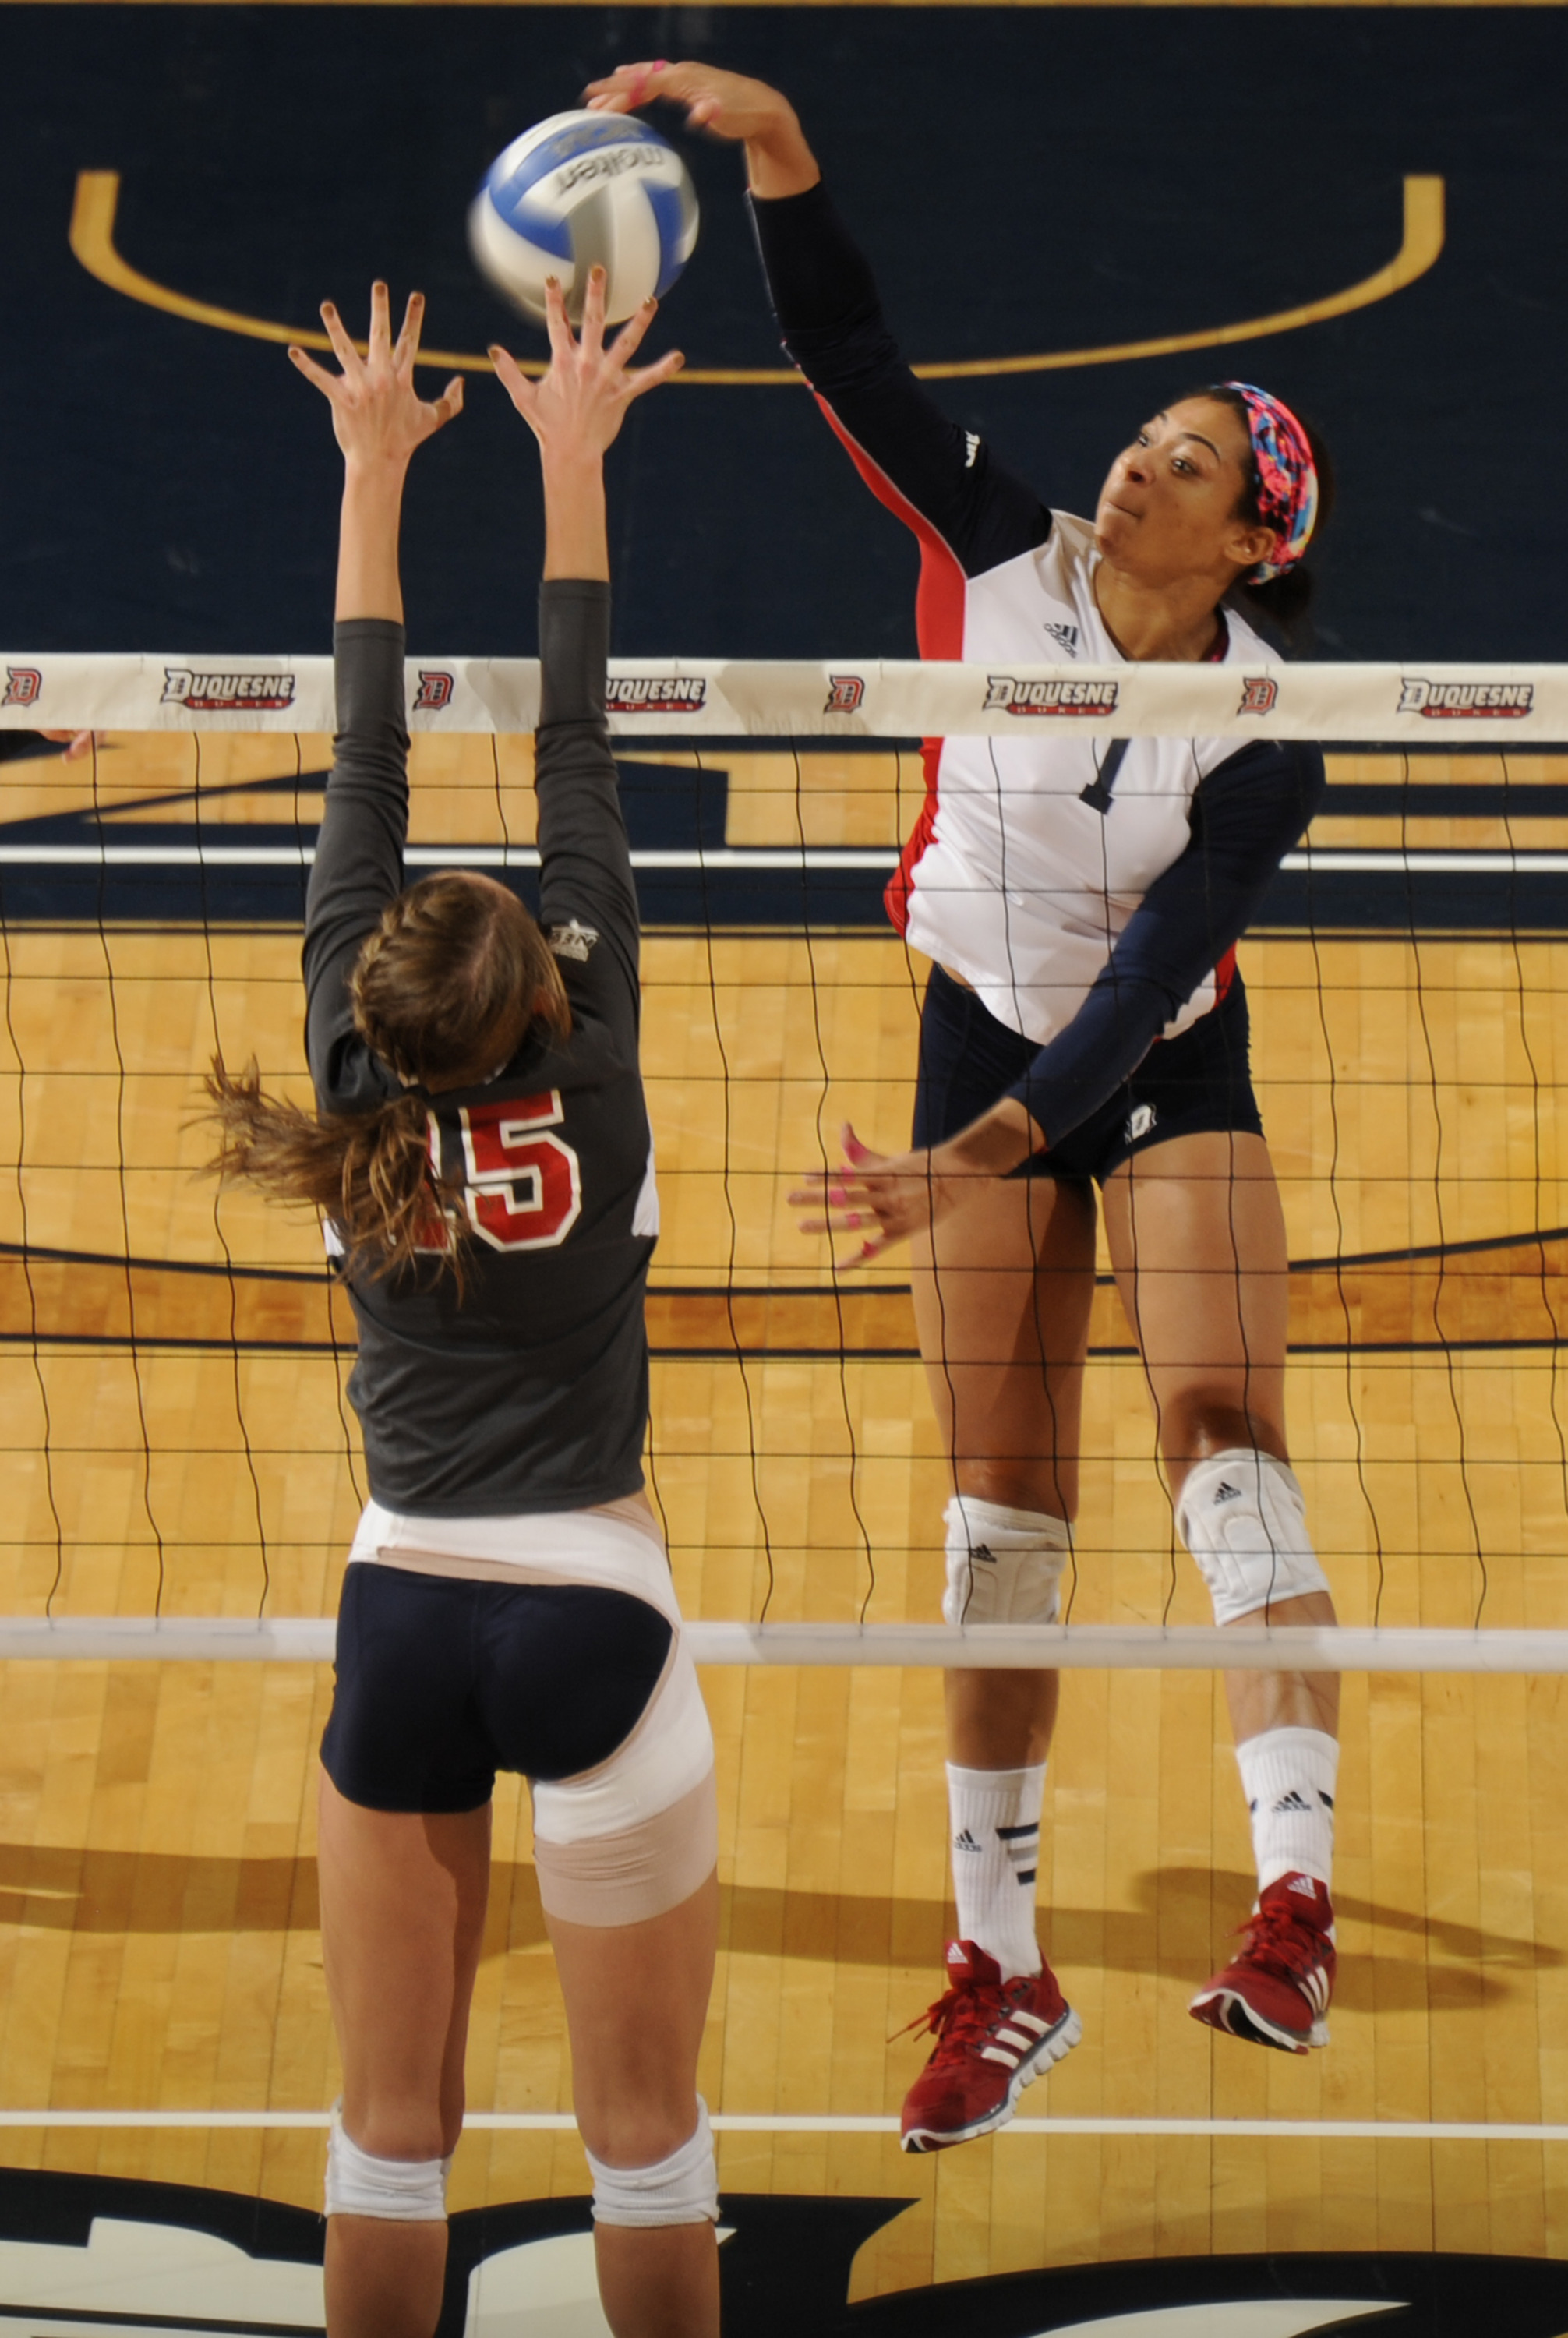 Arielle Love recorded her 1,000 career kill on Sunday